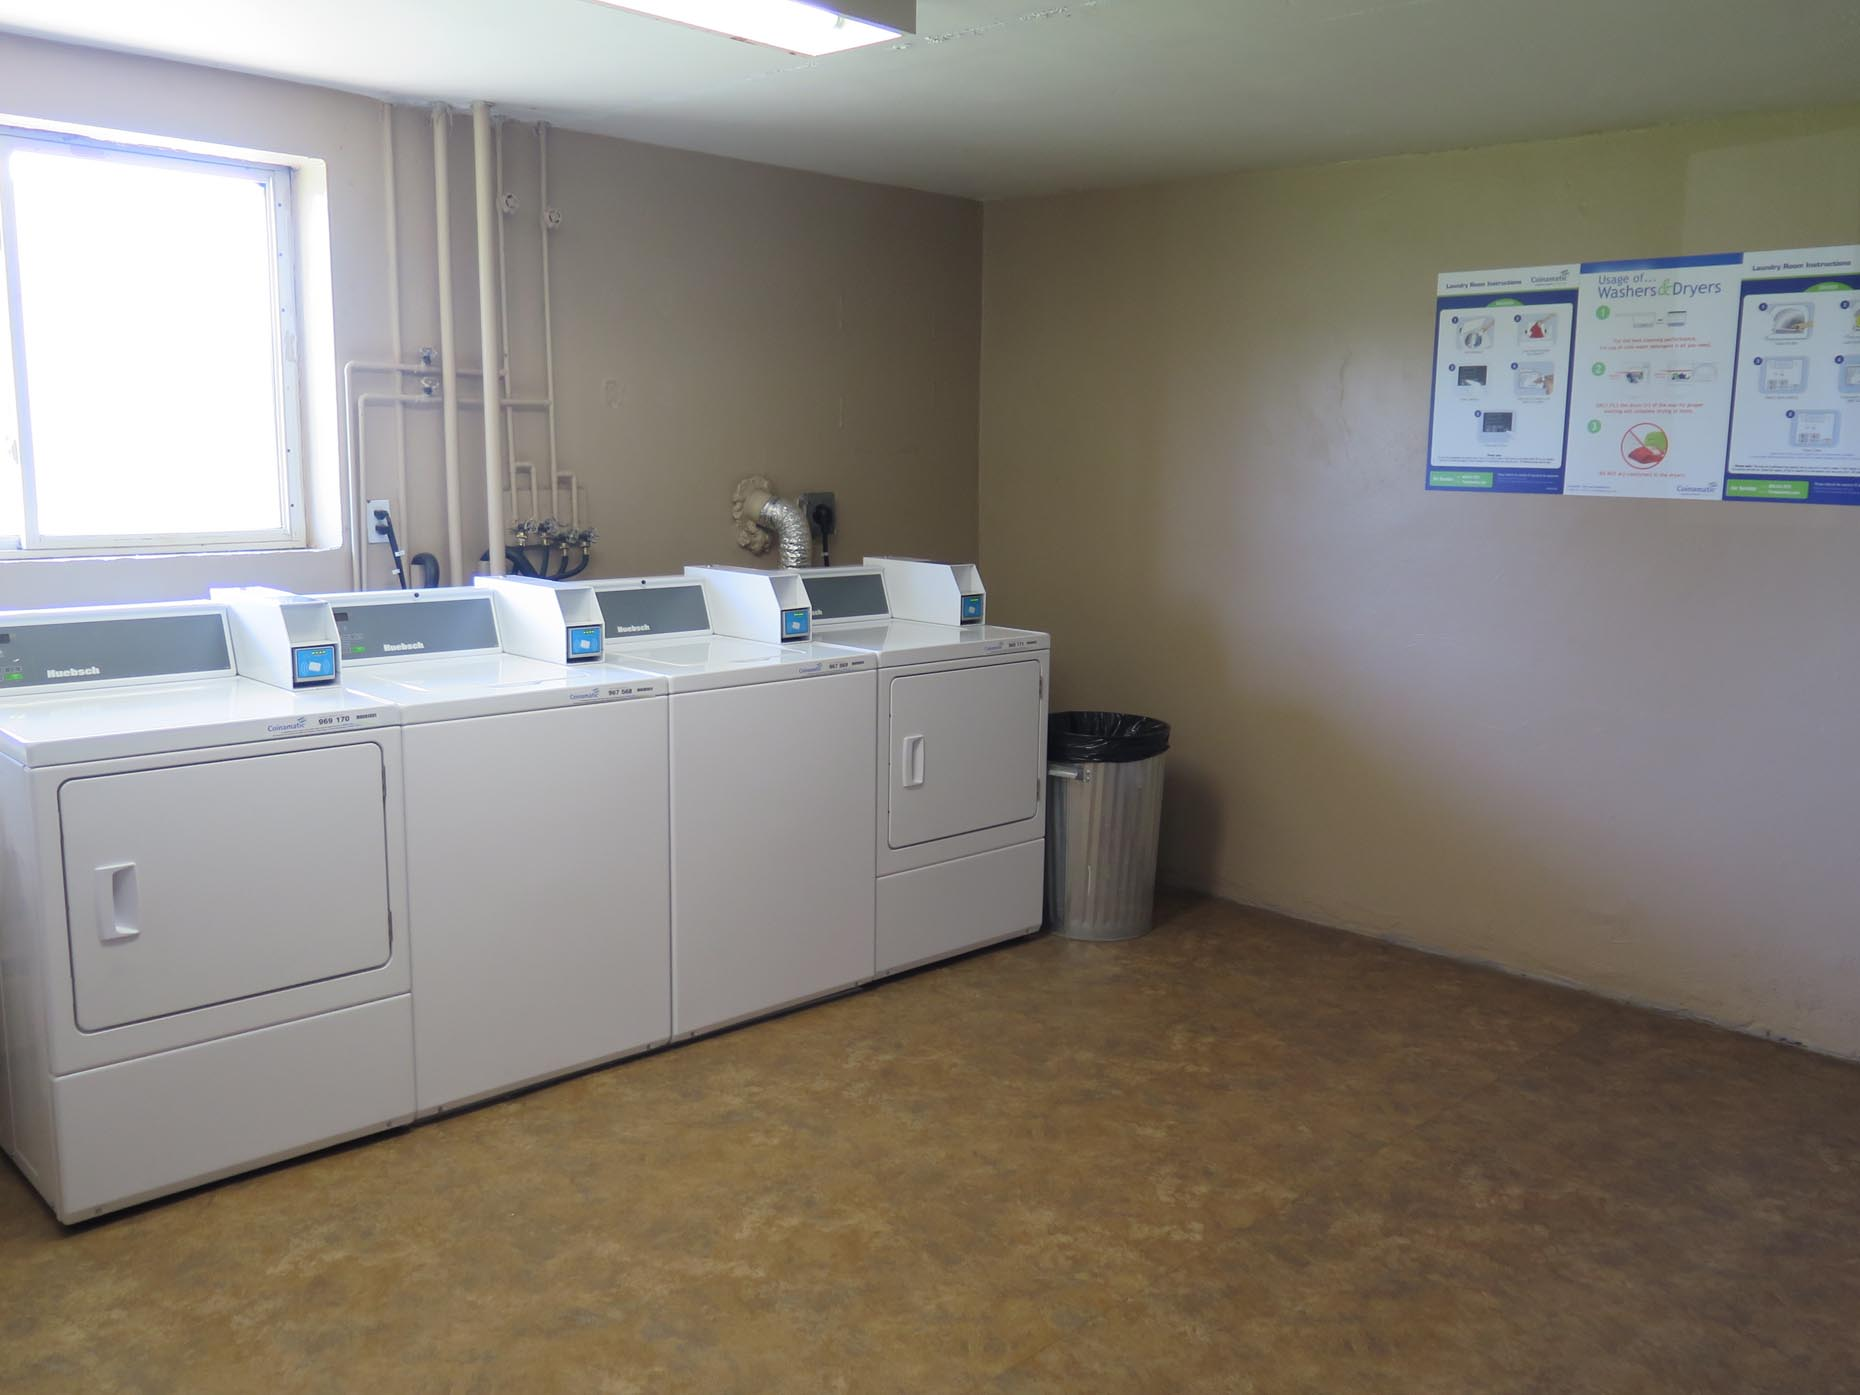 Washer and Dryer at Meadowcrest Apartments in London